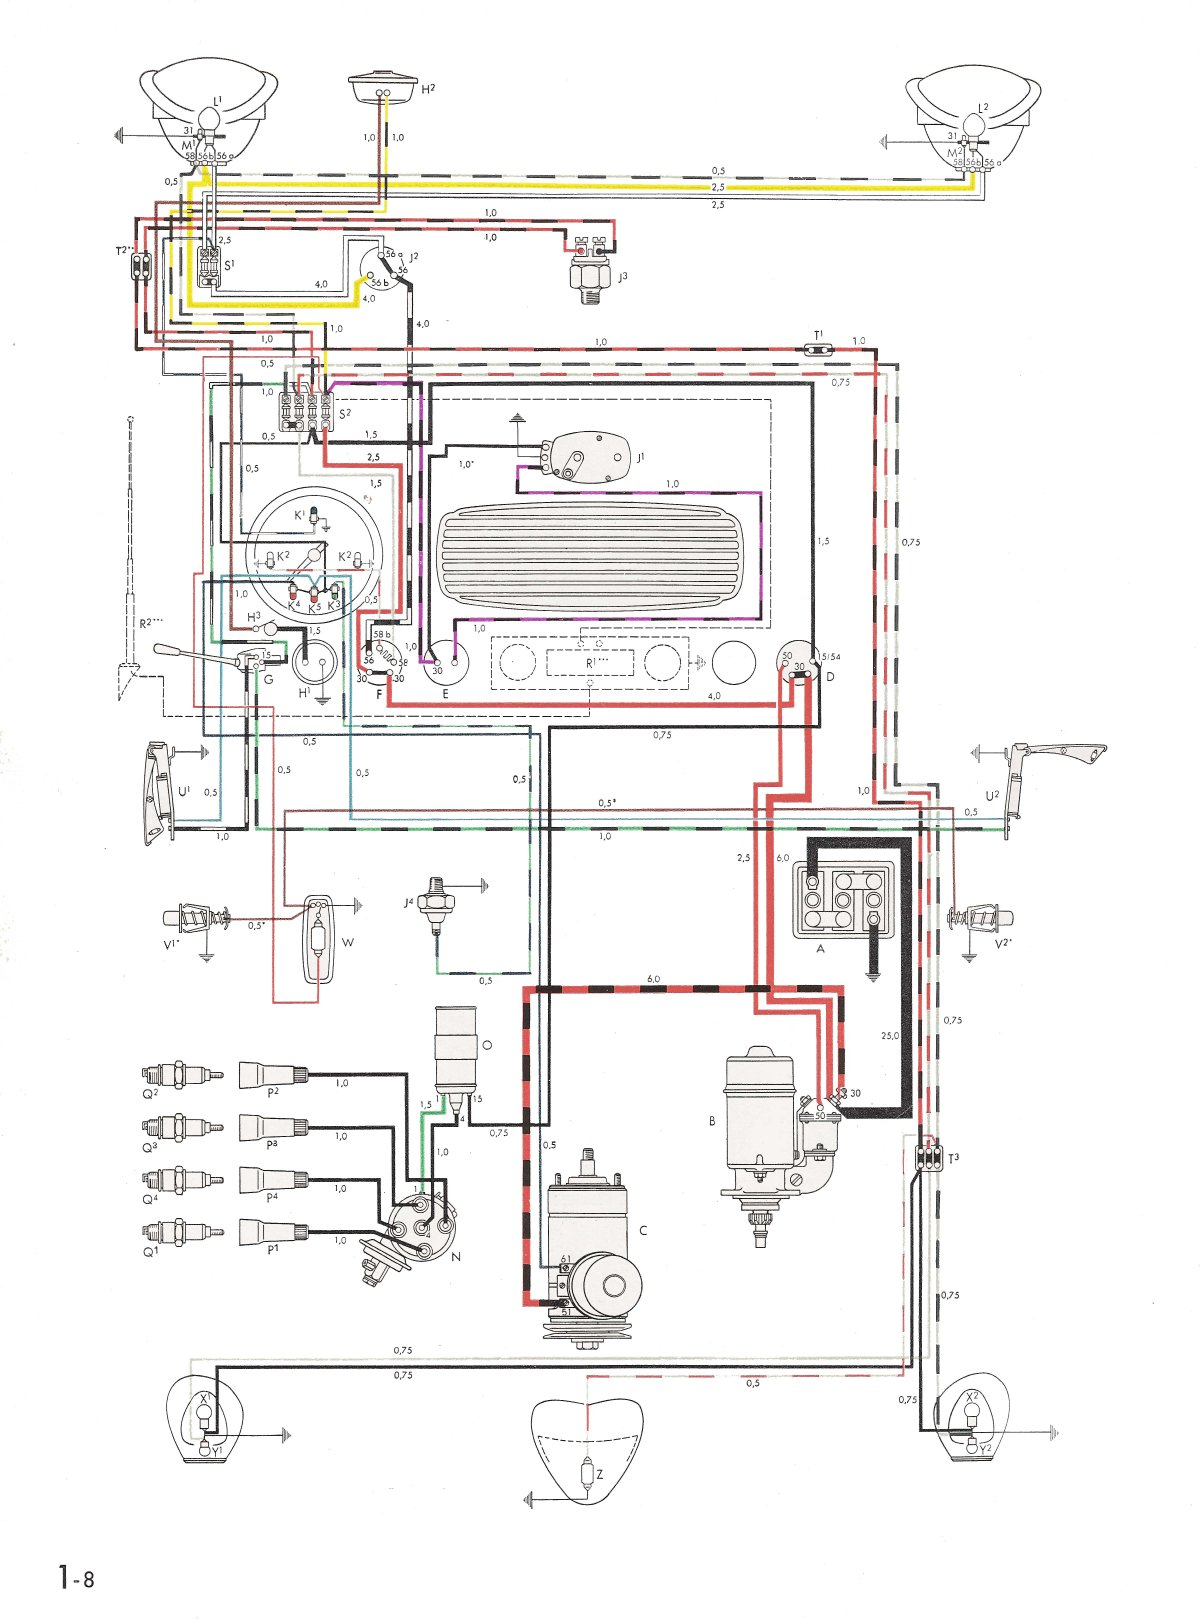 hight resolution of 74 vw super beetle wiring diagram wiring diagram centre74 vw super beetle wiring diagram